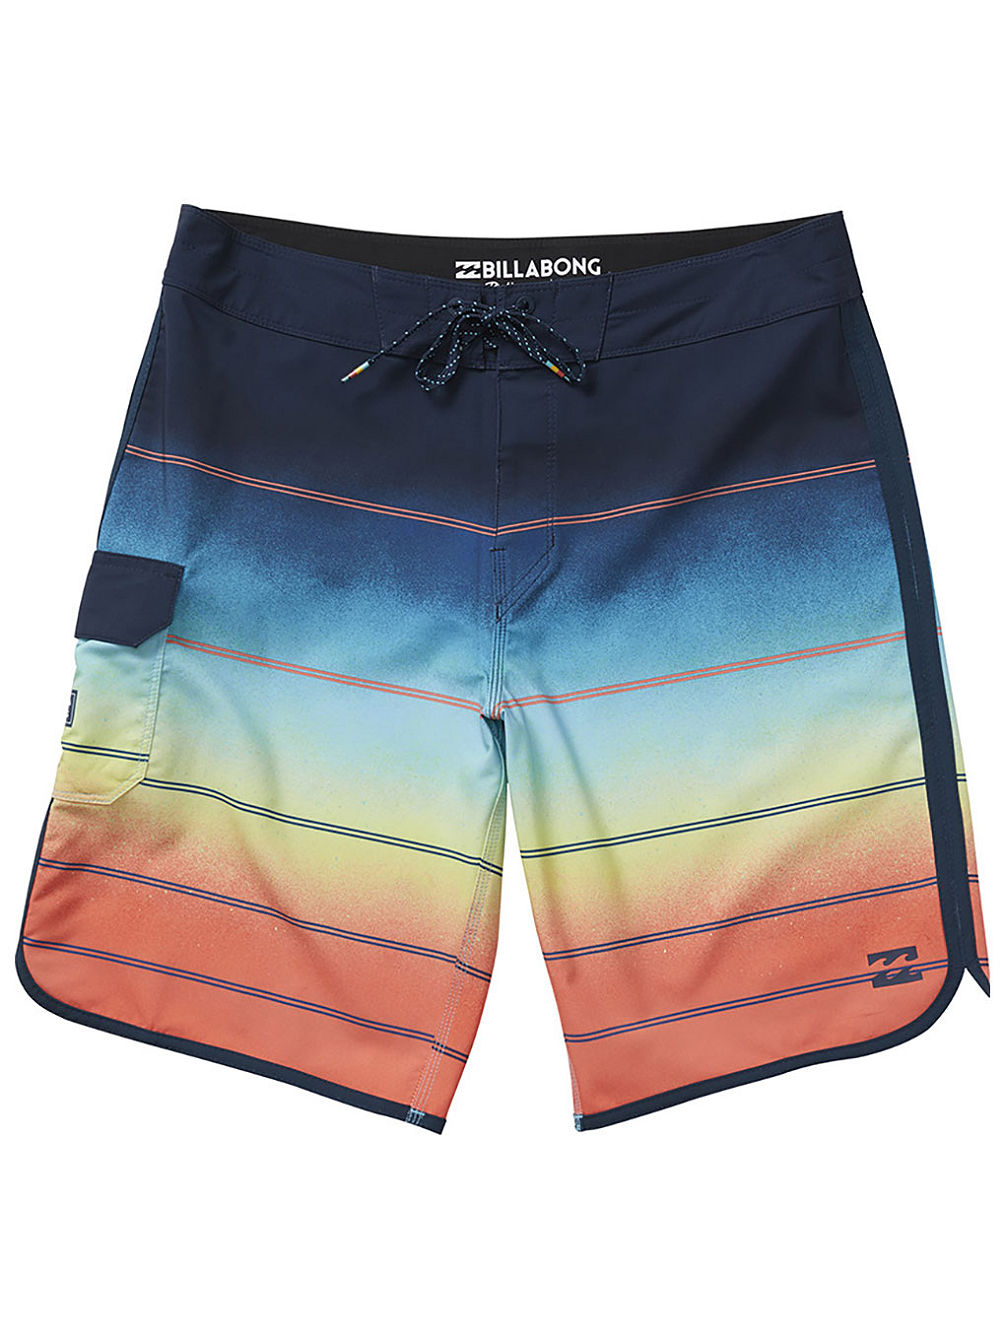 "73 X Stripe 16.5"" Boardshorts Boys"